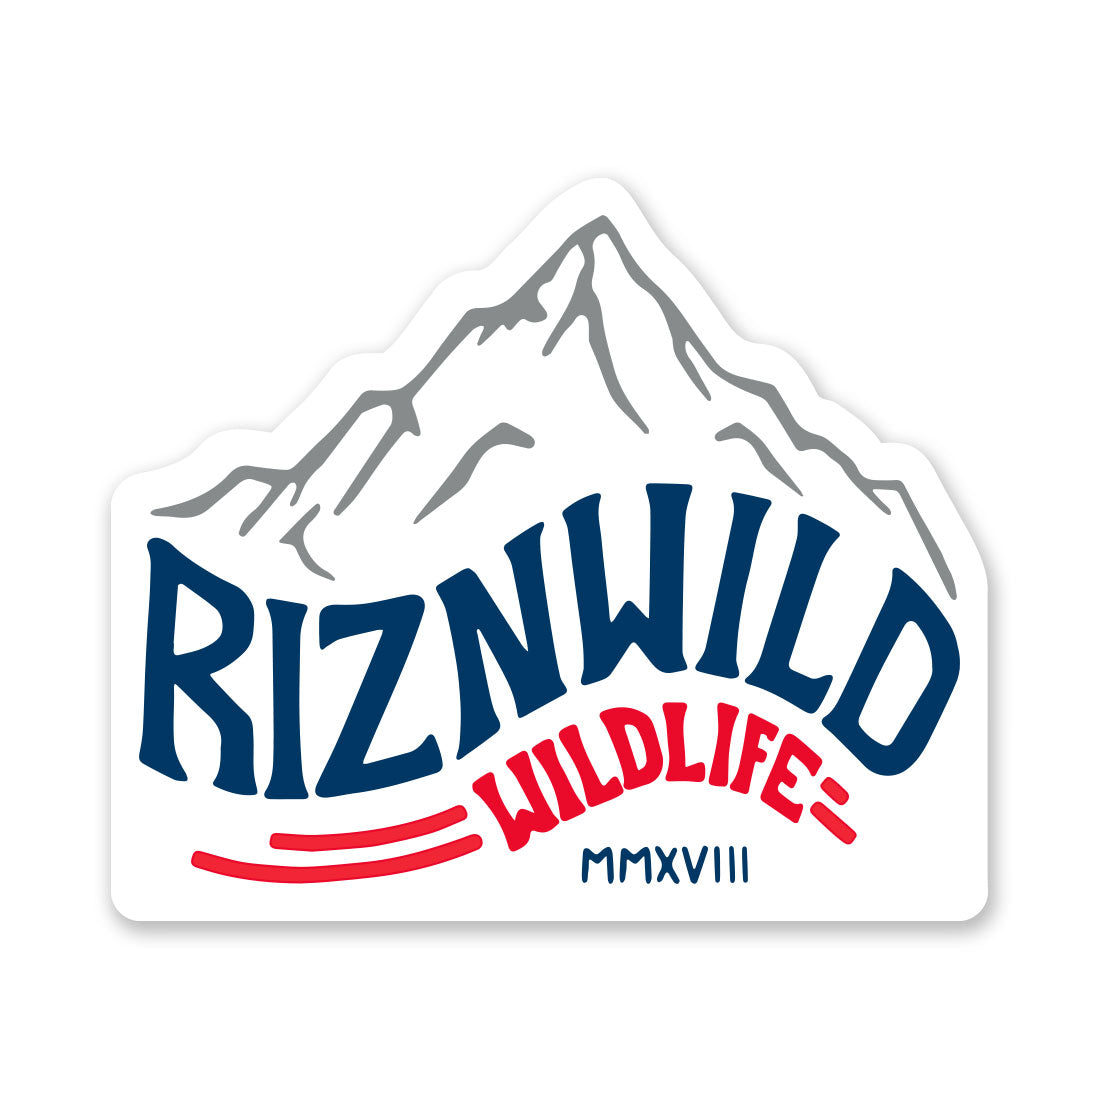 RIZNWILD Rockies Sticker 6 Inch